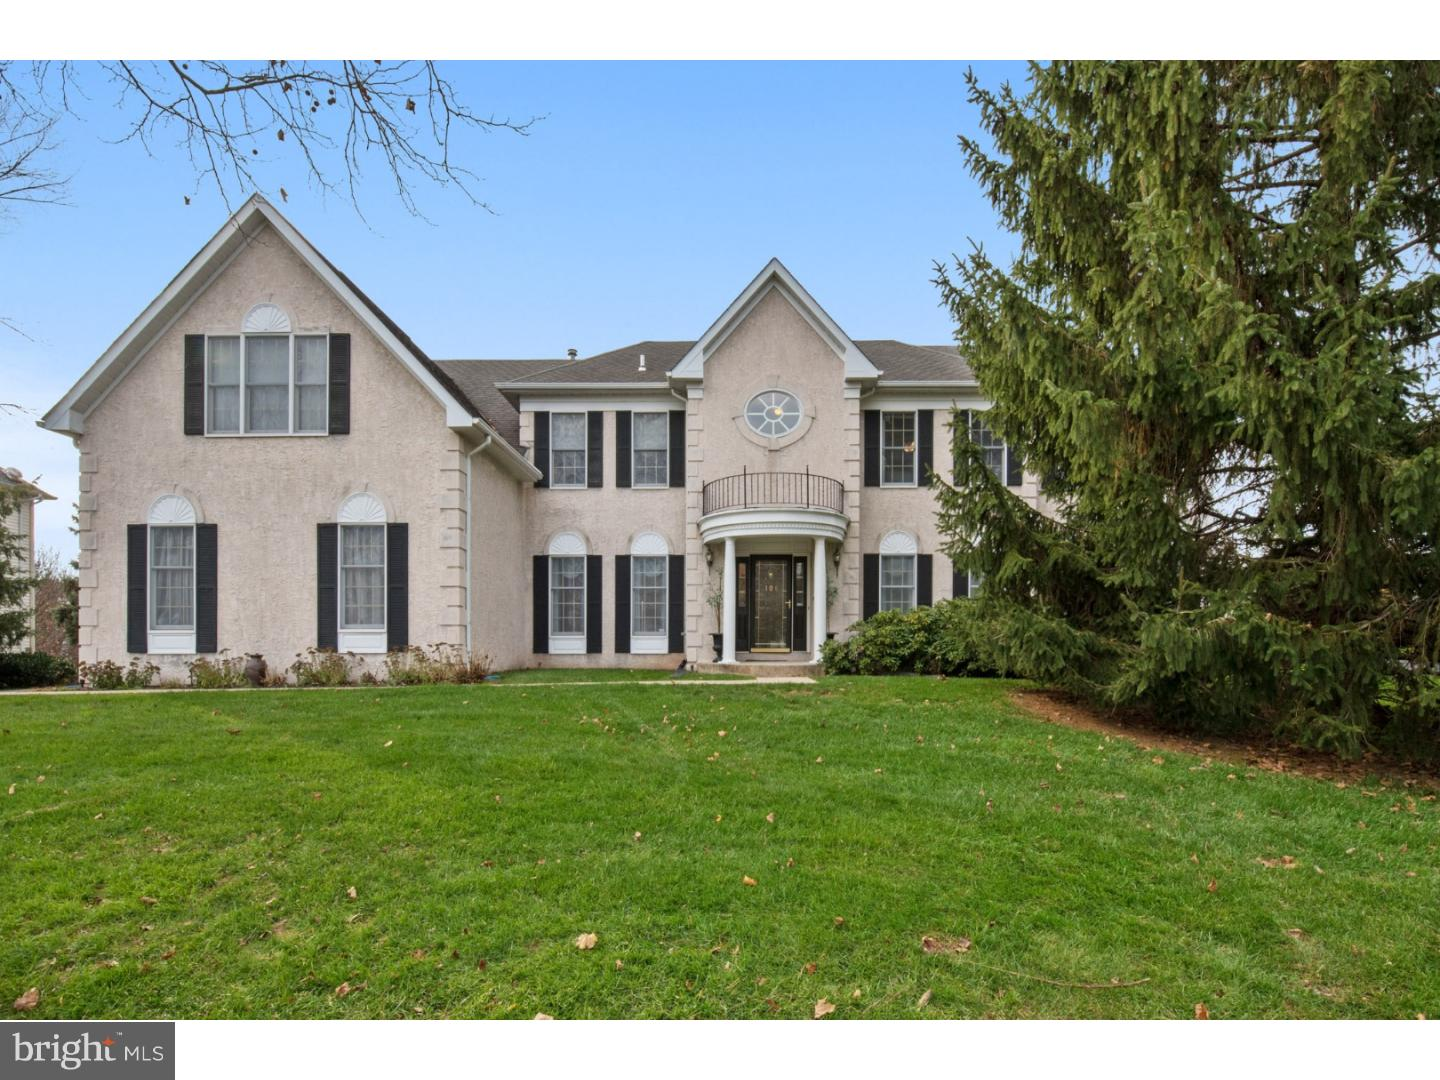 106 CYPRESS POINT PLACE, BLUE BELL, PA 19422